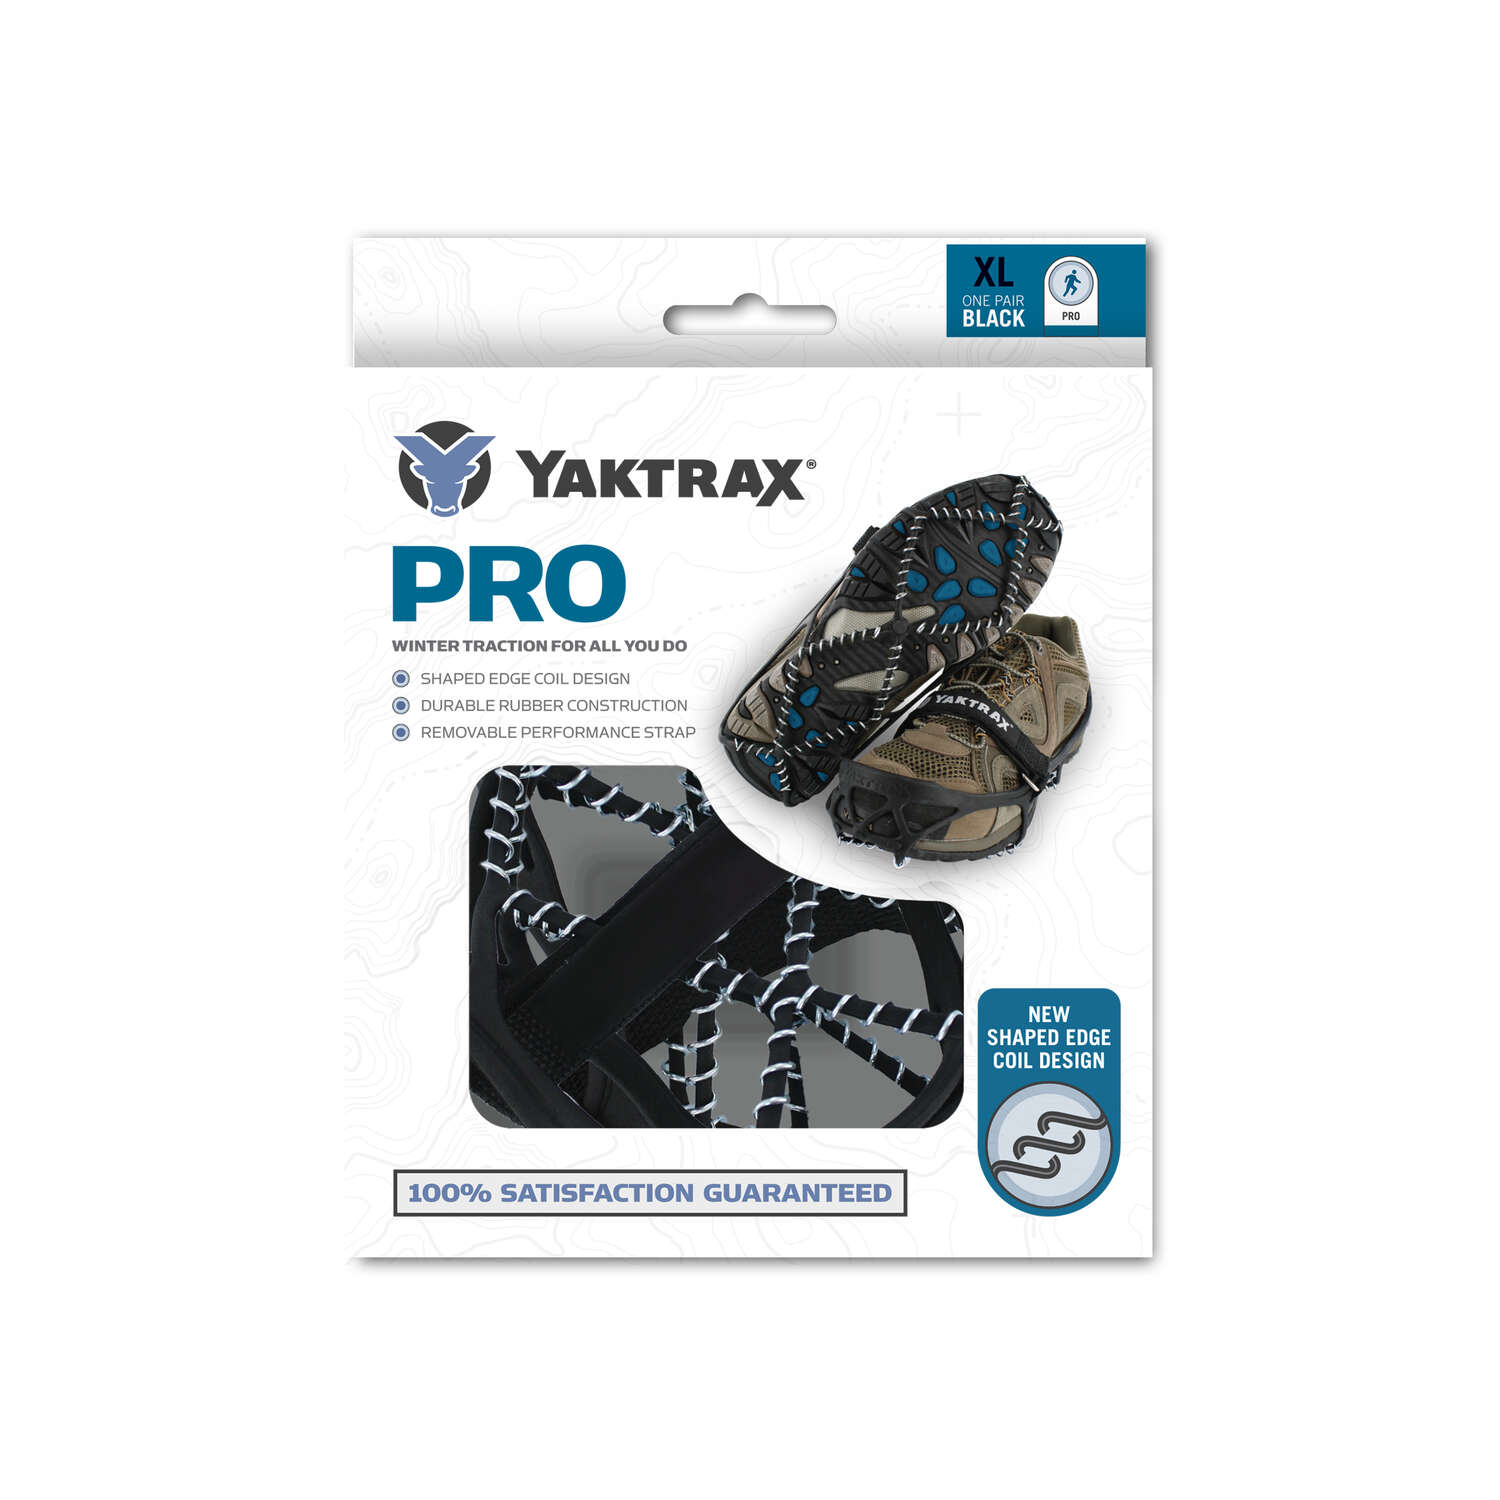 Yaktrax  PRO  Unisex  Traction Device  Black  W 10.5-12.5/M 9-11  Waterproof 1 pair Rubber/Steel